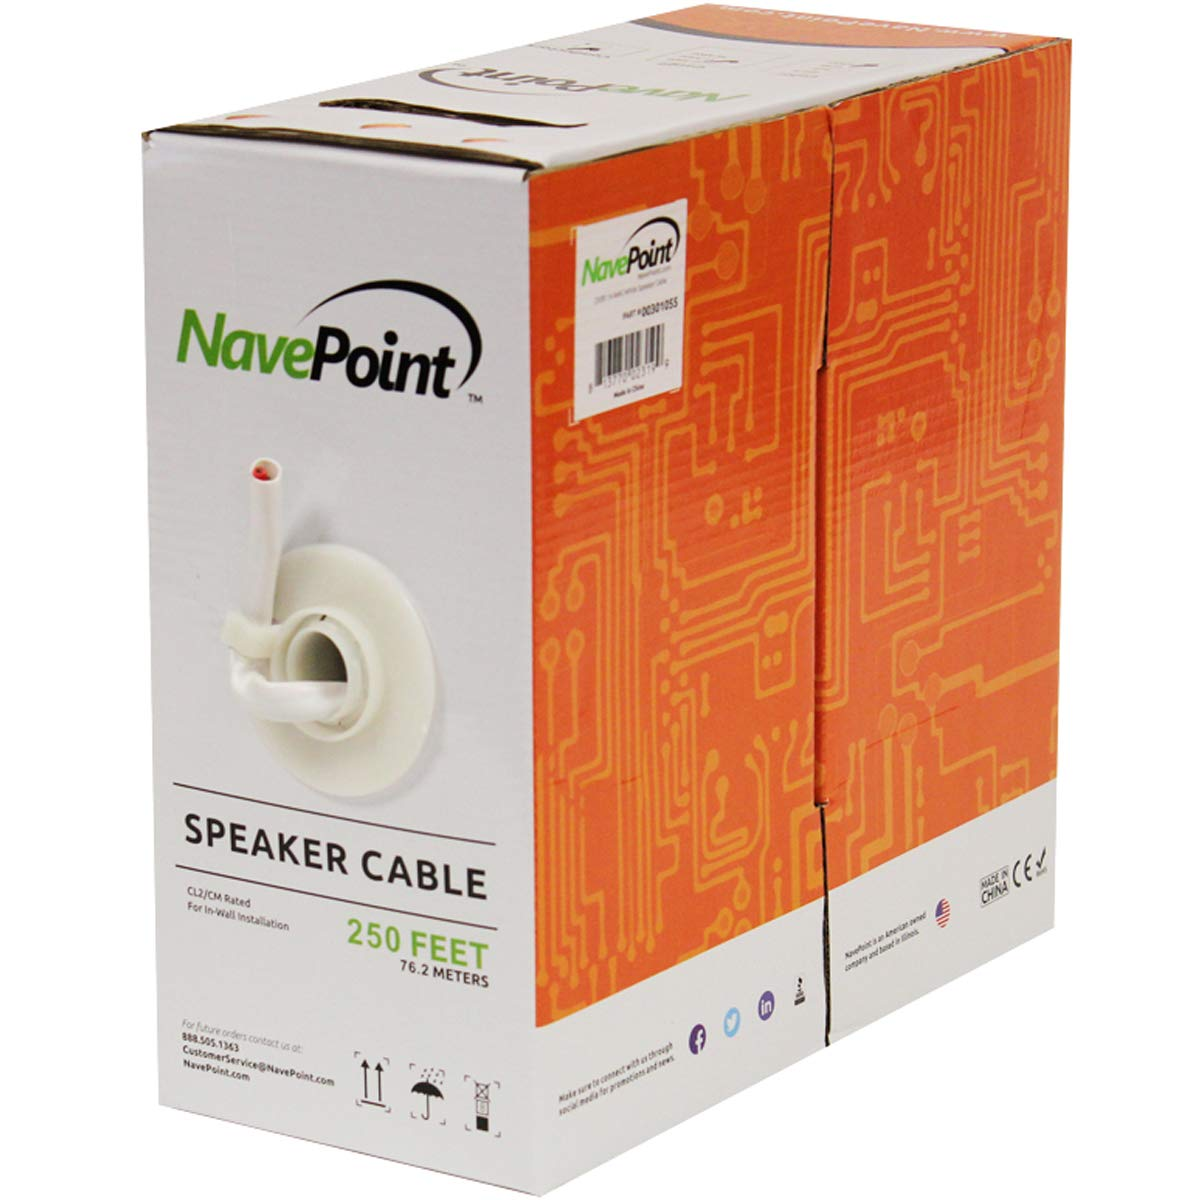 NavePoint 250ft in Wall Audio Speaker Cable Wire CL2 14/2 AWG Gauge 2 Conductor Bulk White by NavePoint